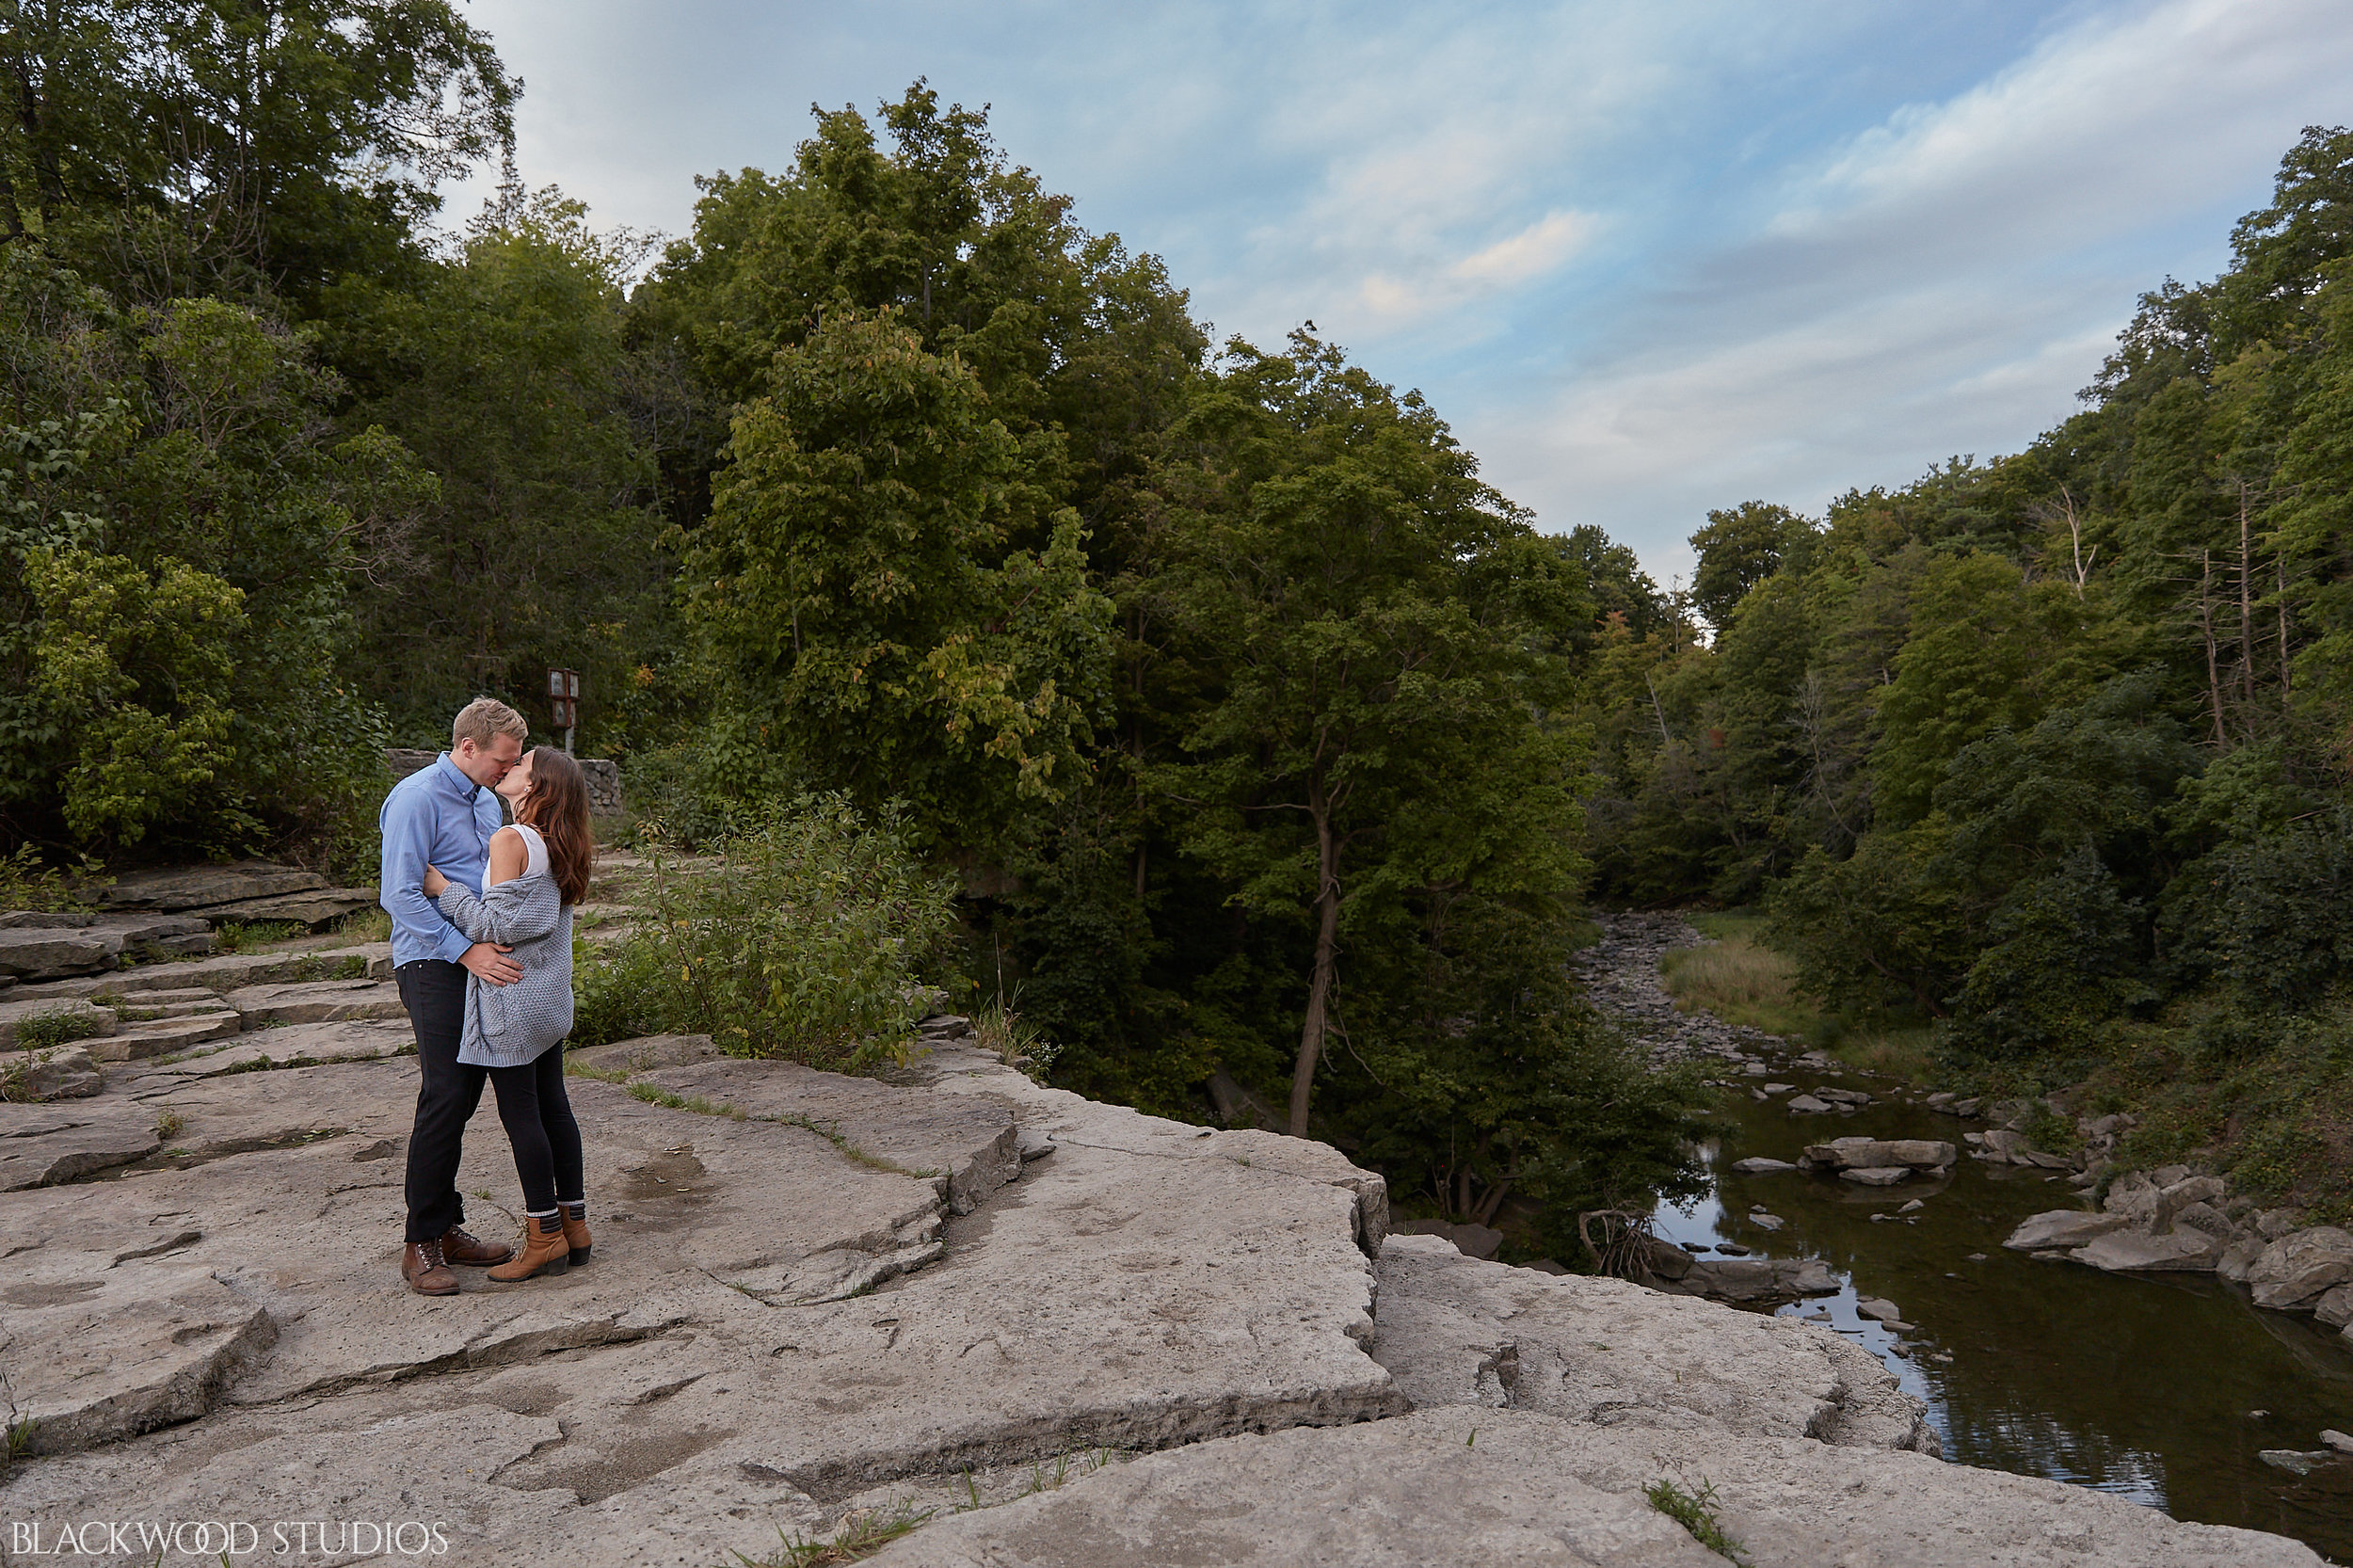 Blackwood-Studios-photography-20180922-190603-Jeff-and-Raven-Engagement-0892-Balls-Falls-Conservation-Area-Lincoln-Niagara-Ontario.jpg